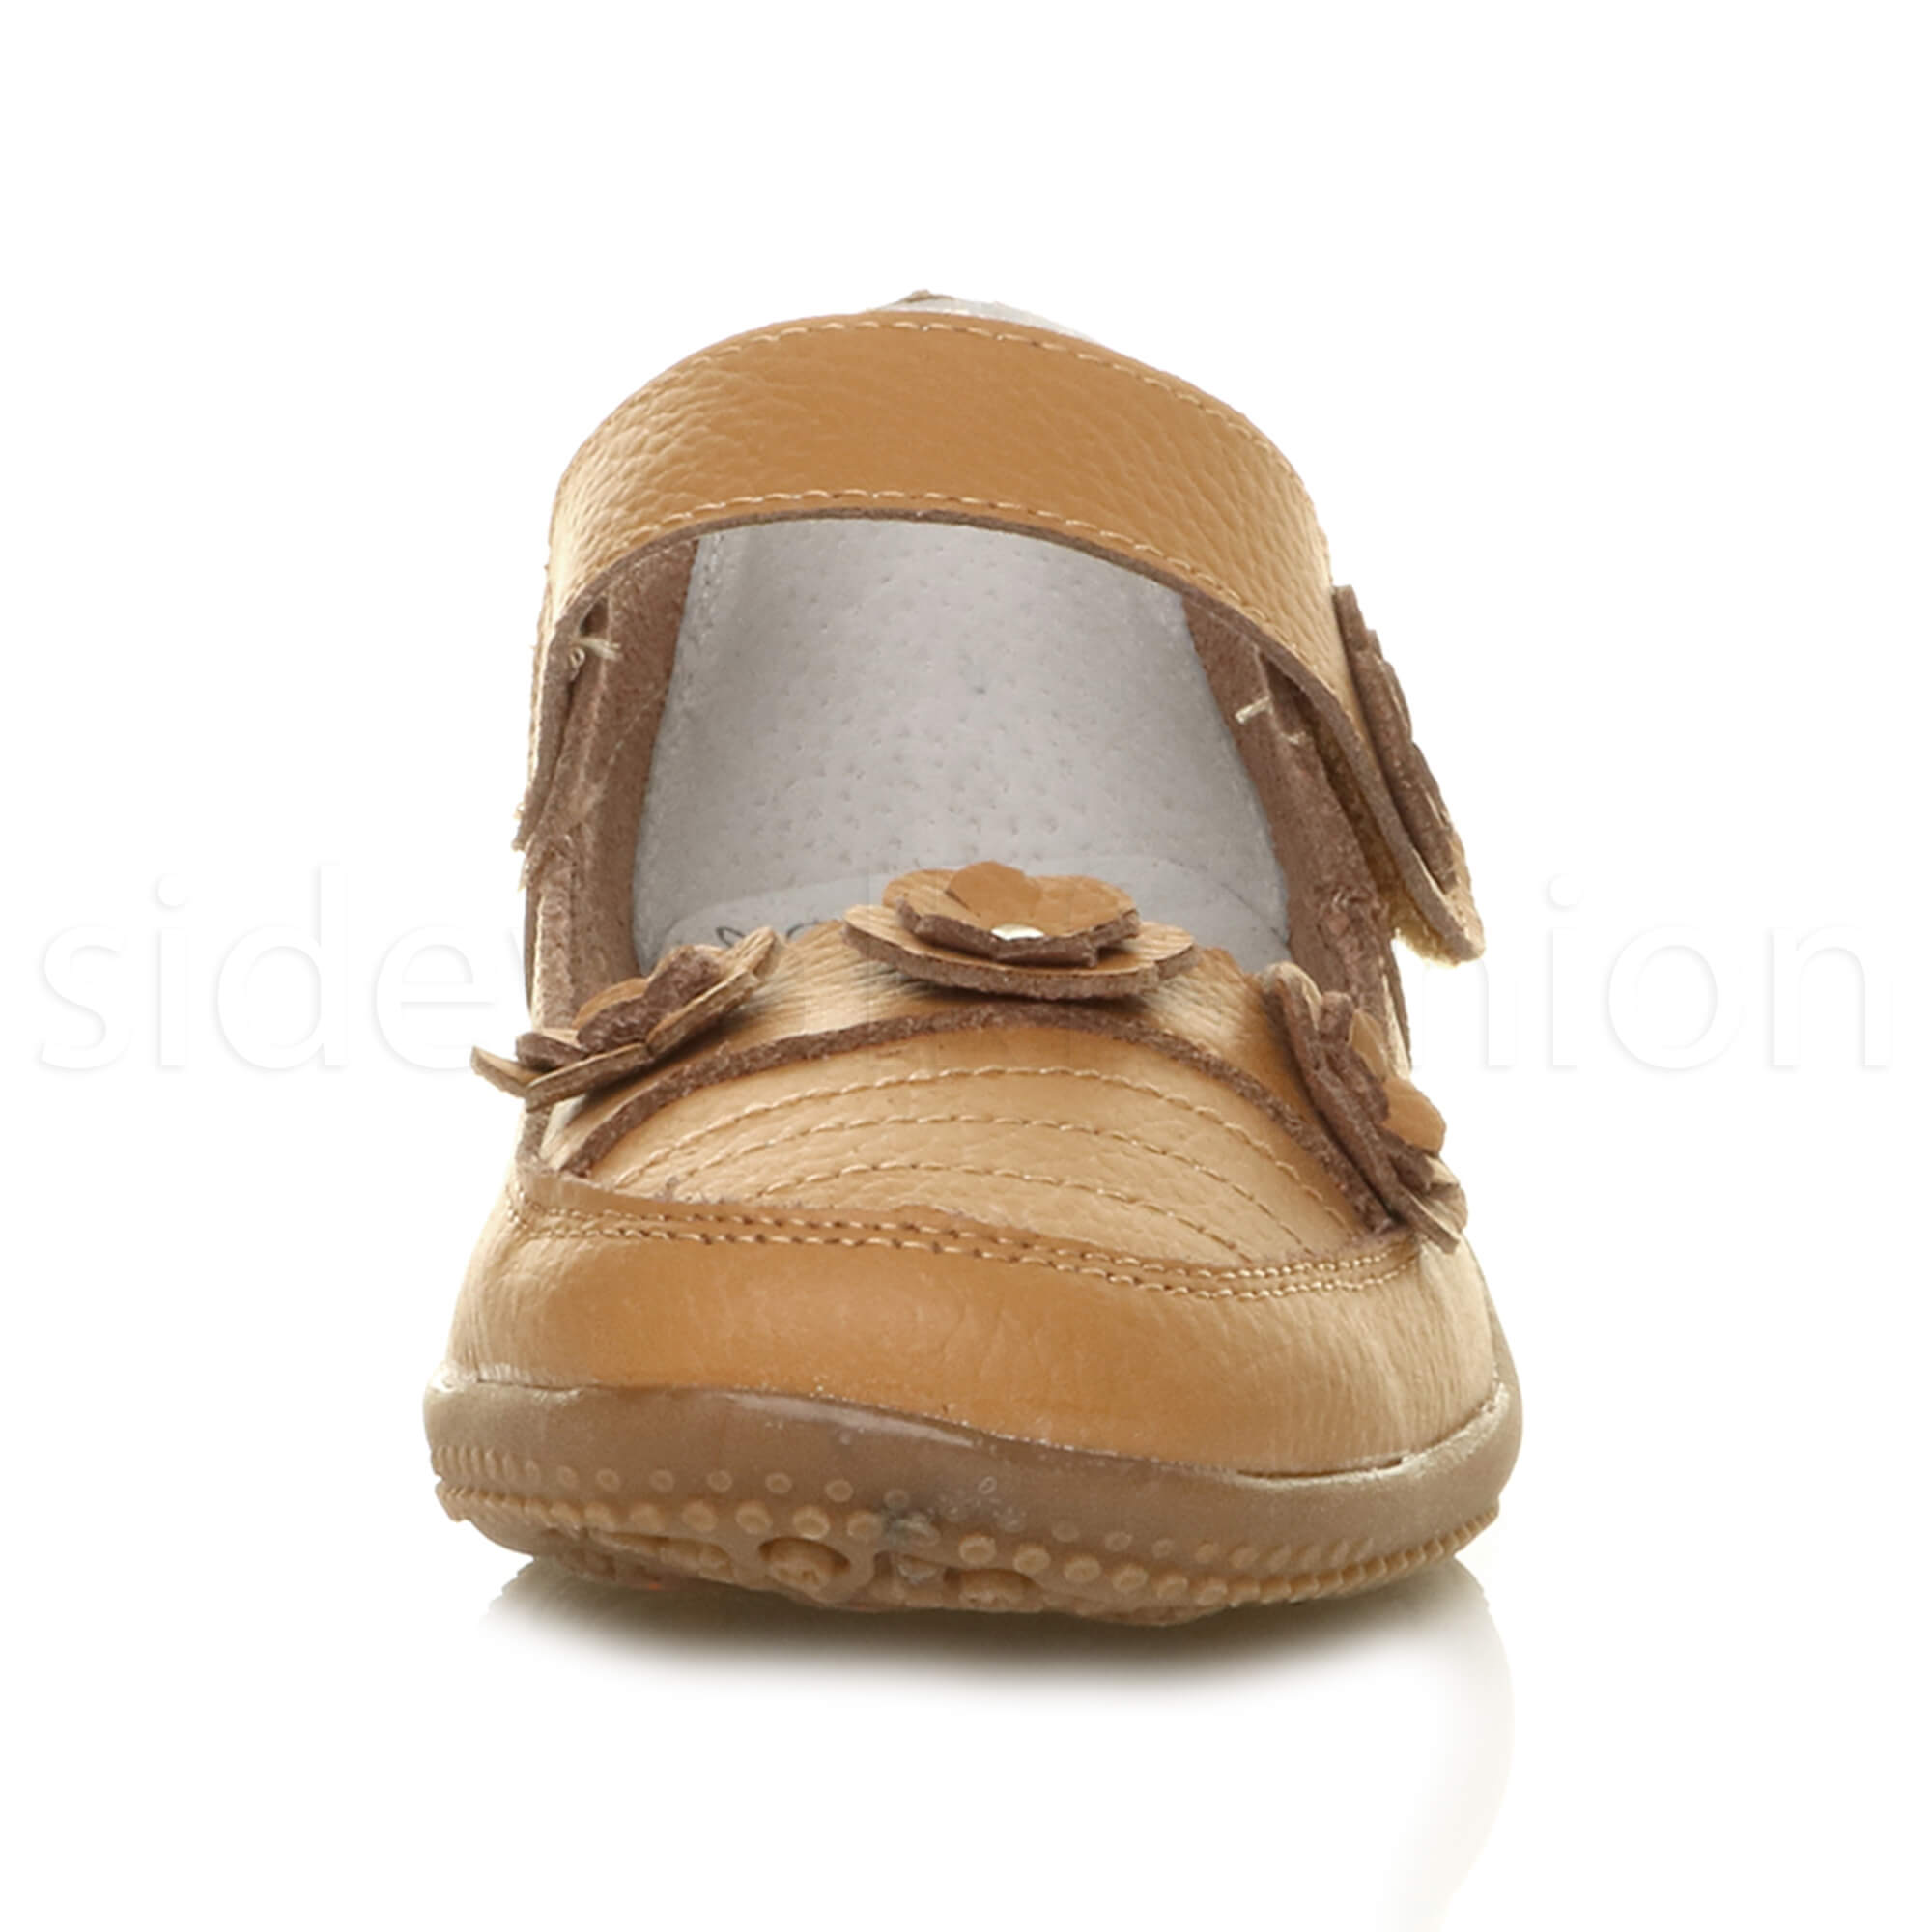 Womens-ladies-leather-comfort-walking-casual-sandals-mary-jane-strap-shoes-size thumbnail 21